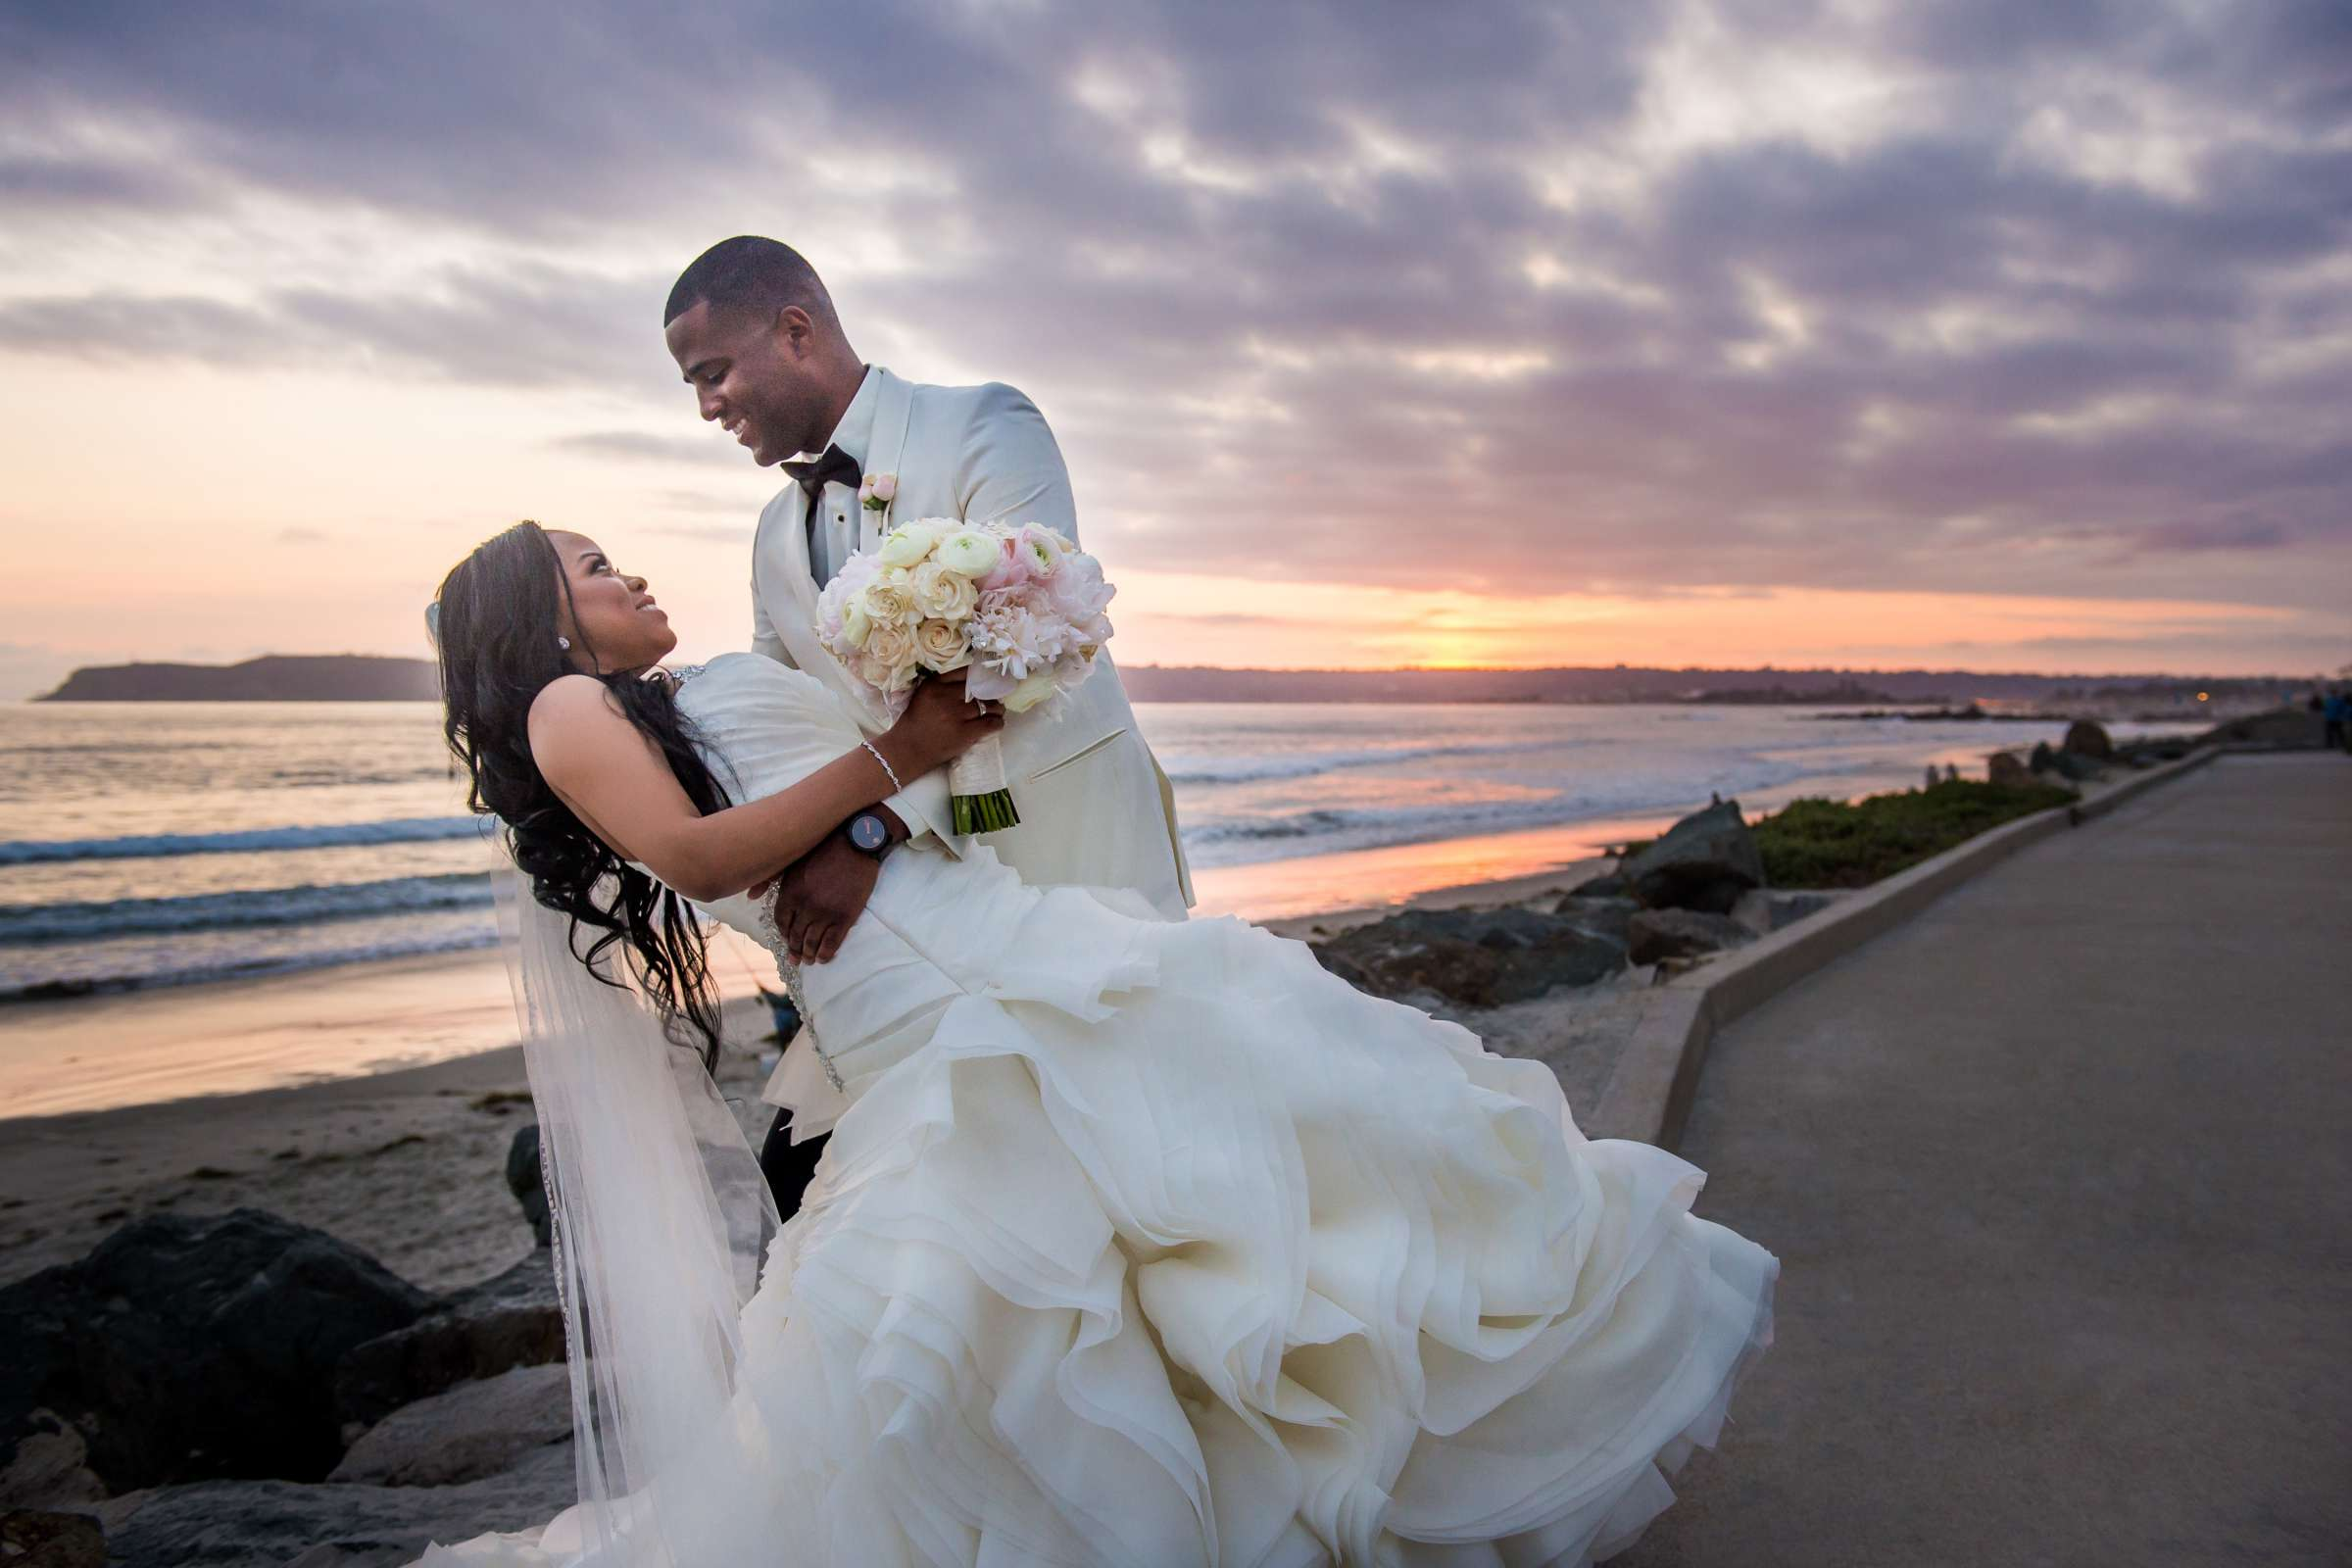 Sunset at Coronado Community Center Wedding coordinated by First Comes Love Weddings & Events, Nikia and Charles Wedding Photo #10 by True Photography